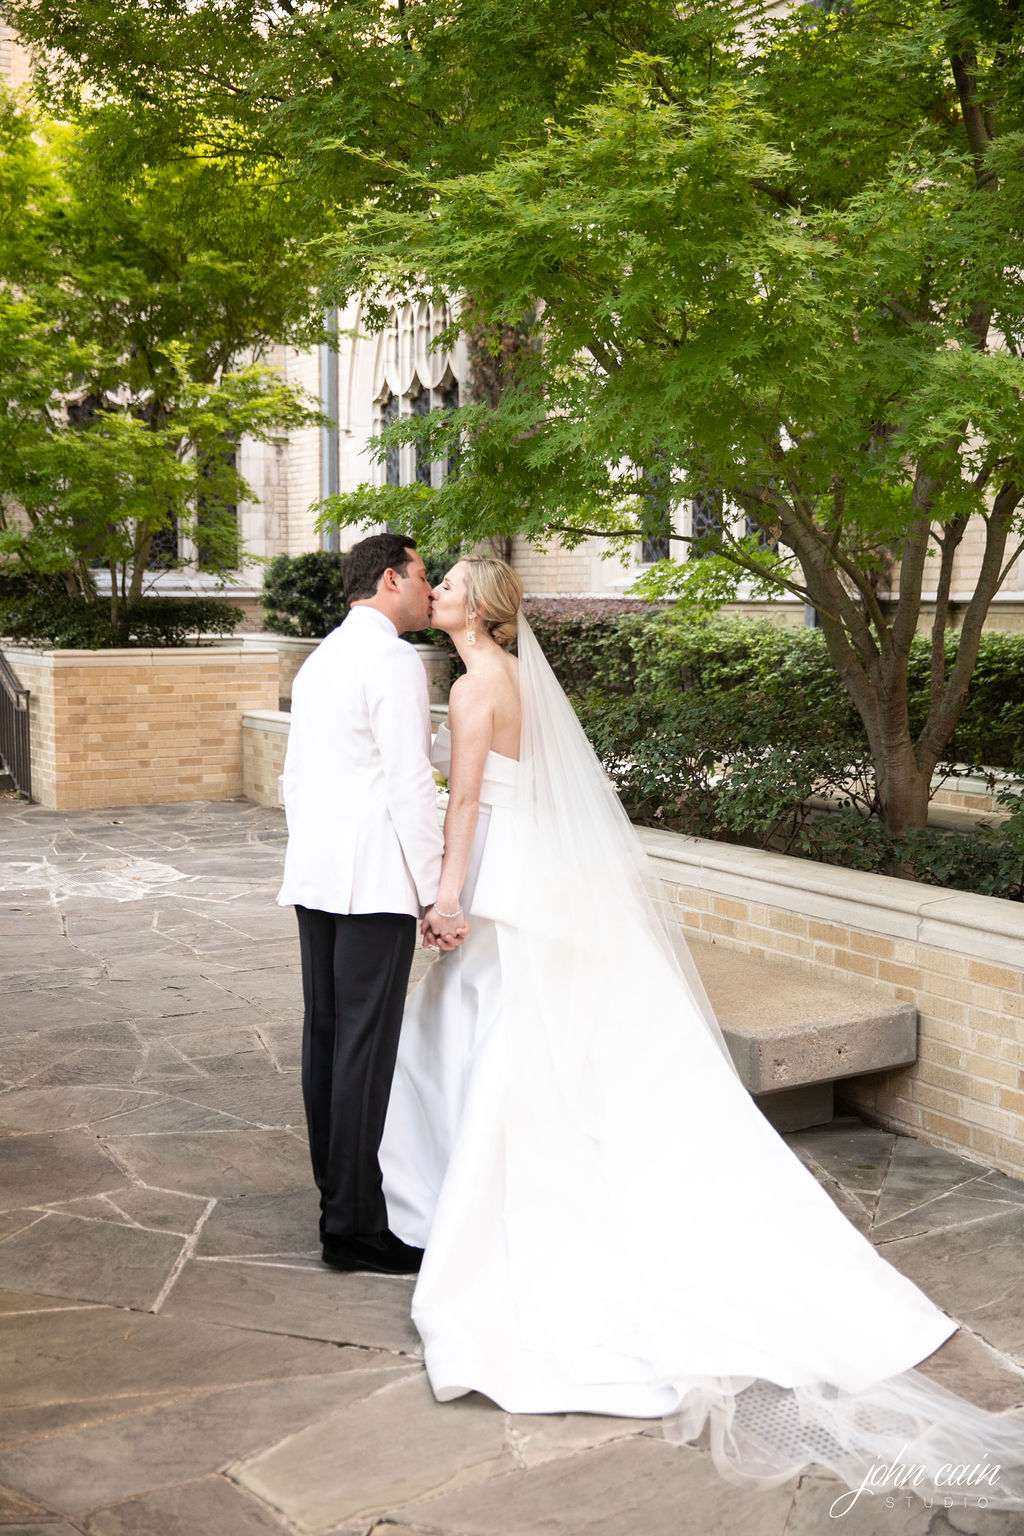 Dallas Country Club Wedding - Timeless Dallas Wedding - Wedding Planner in Dallas - Allday Events - Portraits - 22.JPG